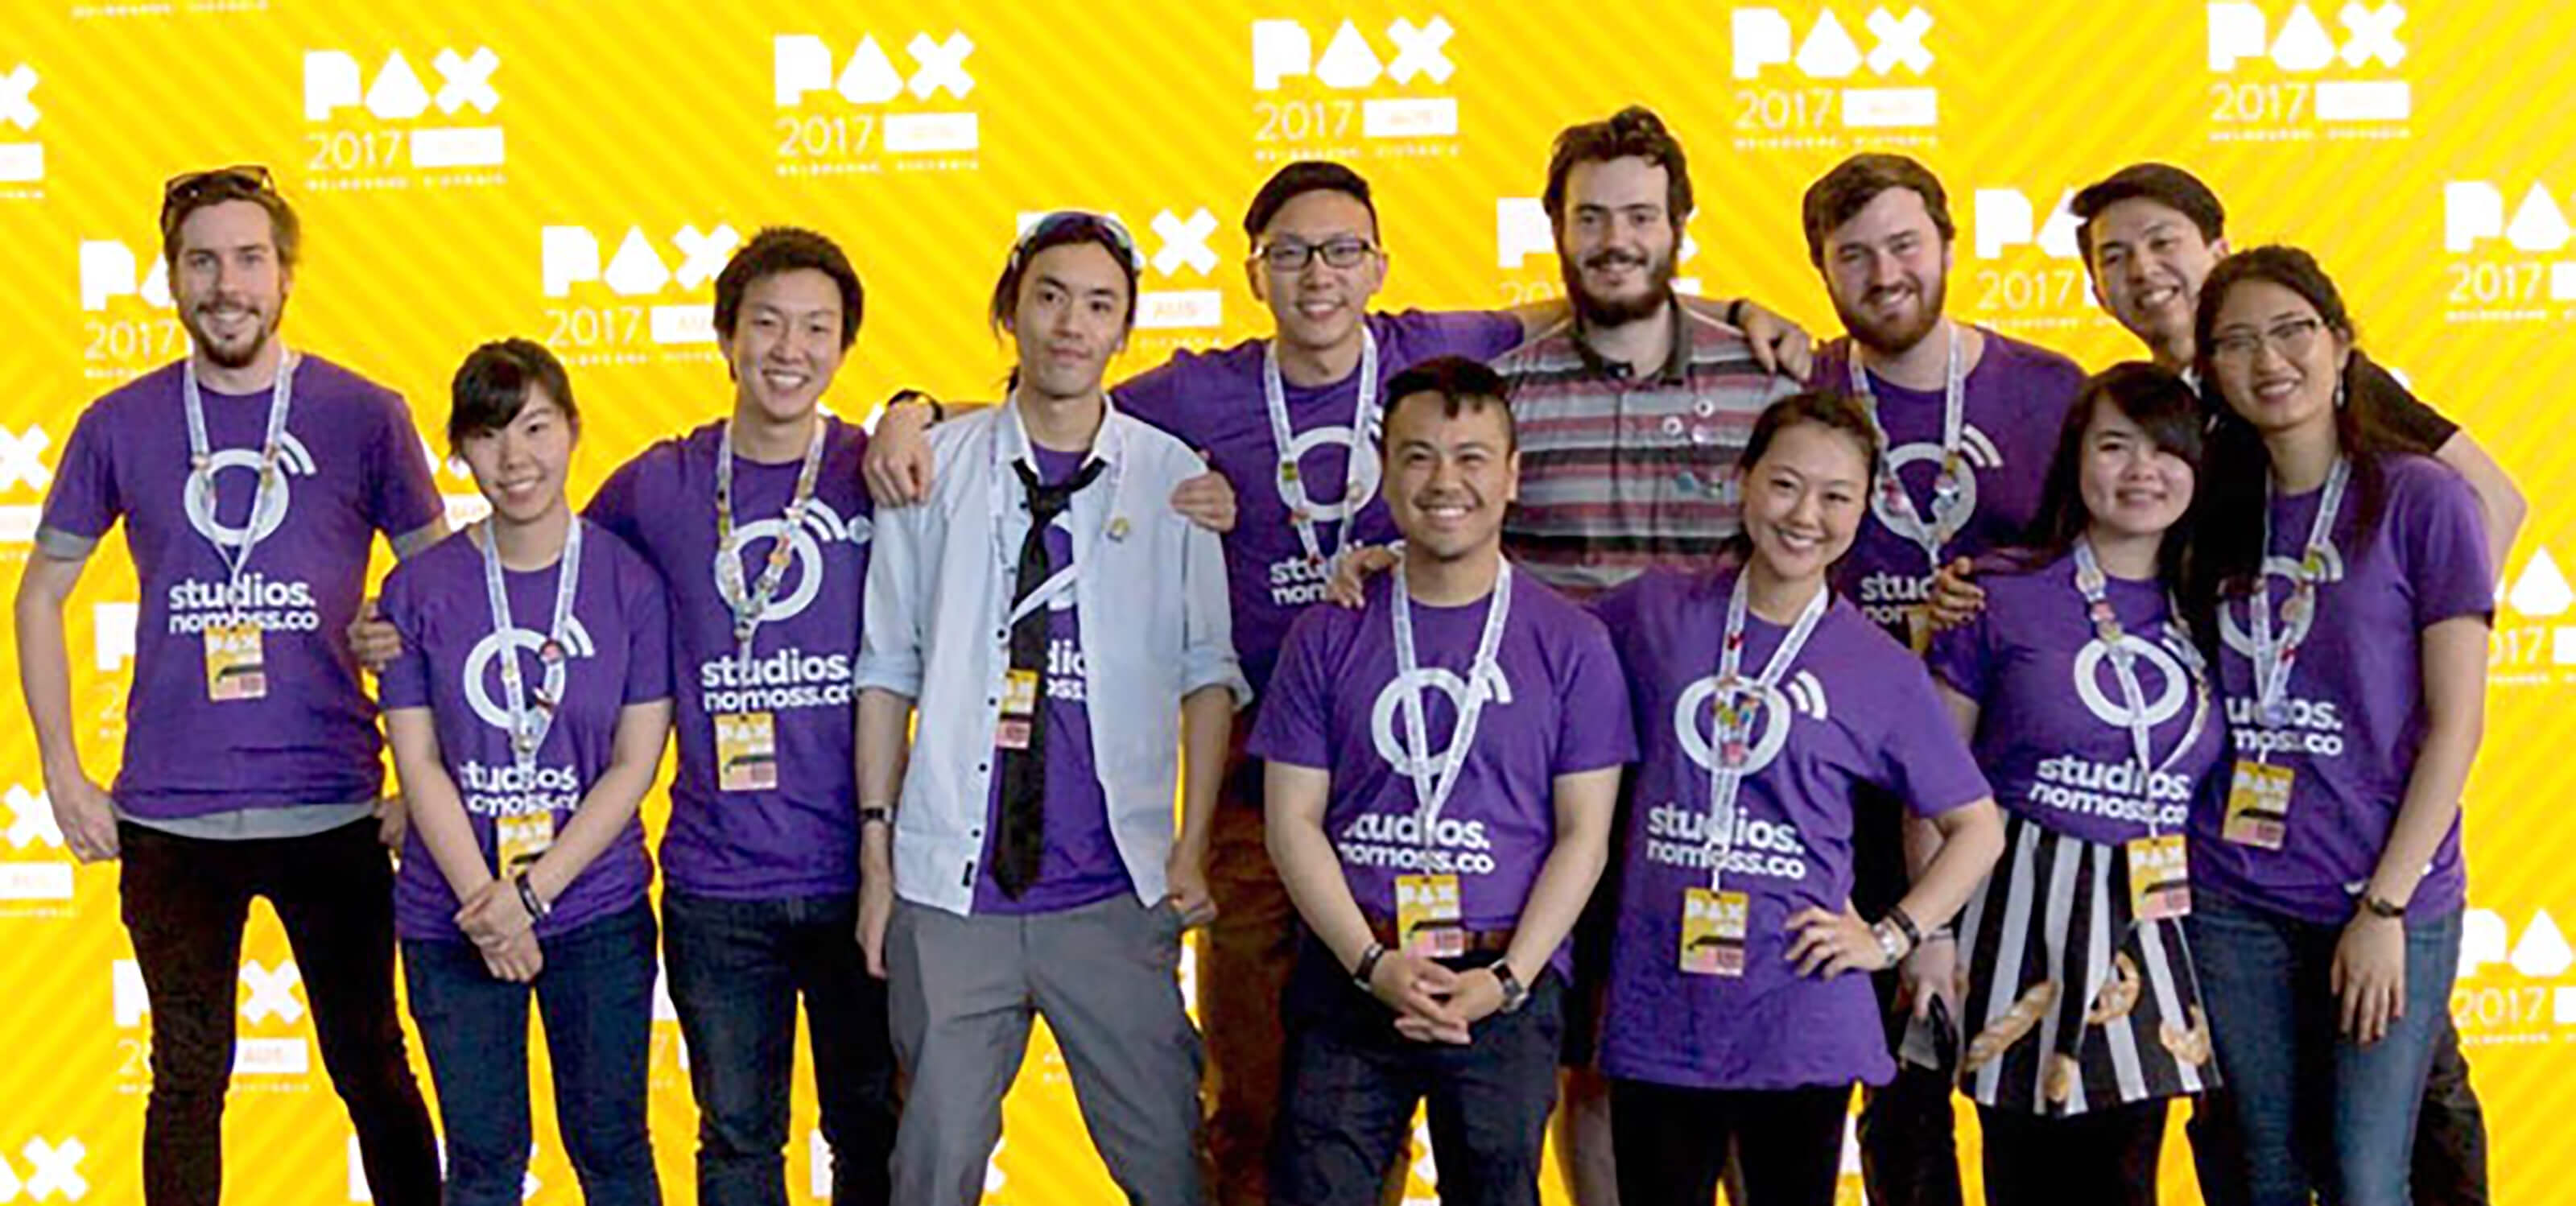 DigiPen (Sinagpore) alumnus Chen Zhiming poses with No Moss Co coworkers in front of a PAX 2017 step-and-repeat